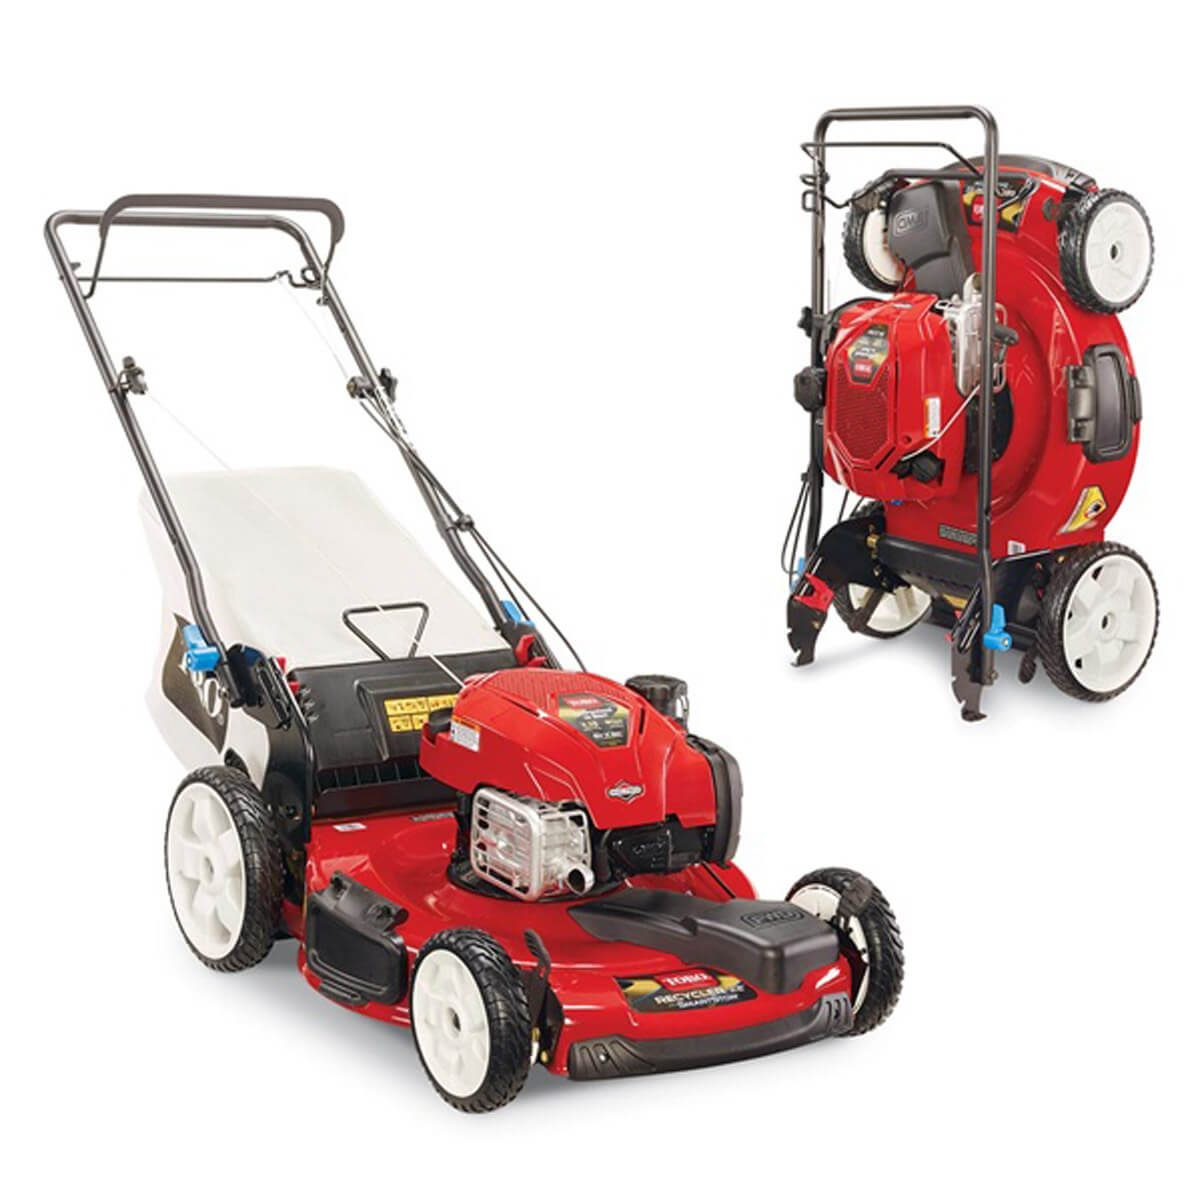 Toro Lawn Mower : Best lawn care products you need this spring the